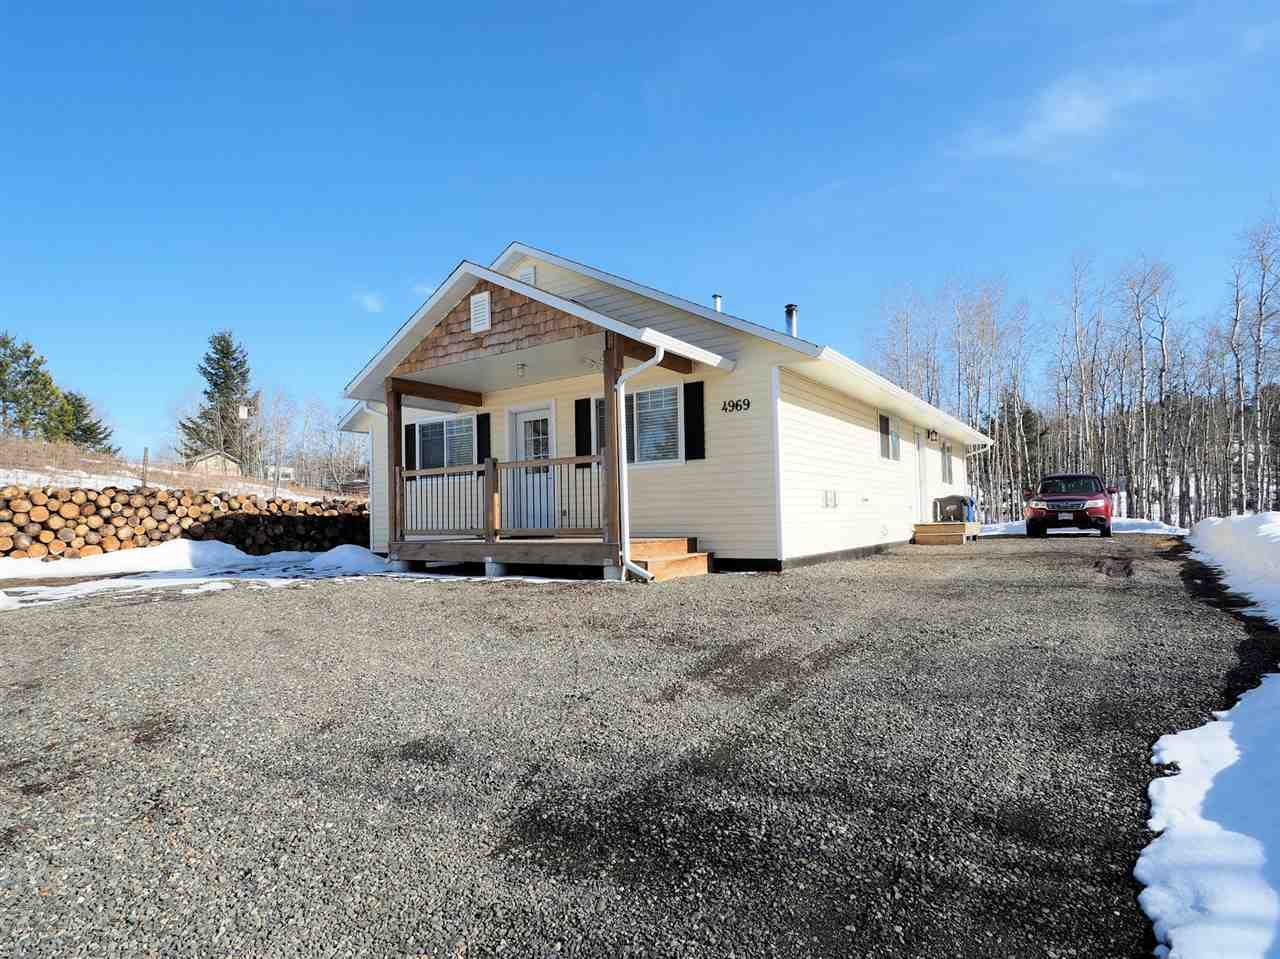 Main Photo: 4969 EASZEE Drive in 108 Mile Ranch: 108 Ranch House for sale (100 Mile House (Zone 10))  : MLS®# R2553061